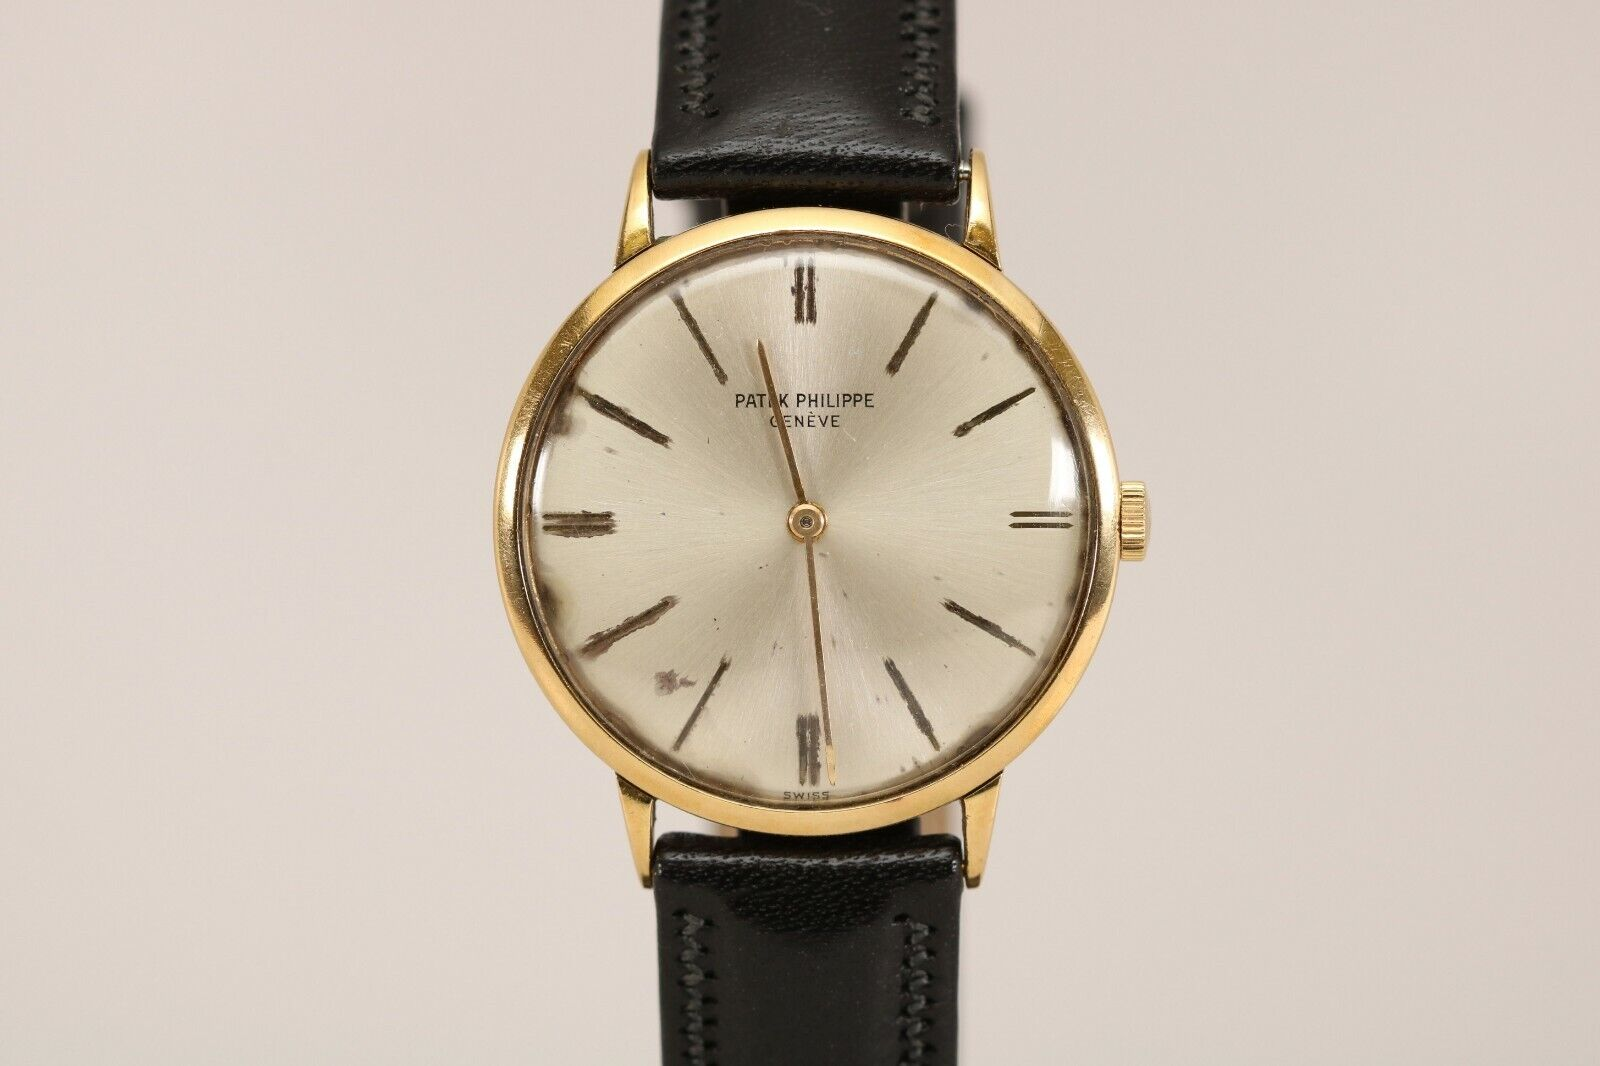 Vintage Patek Philippe Calatrava 18K Yellow Gold Mechanical Watch 1970s Ref 3468 - watch picture 1